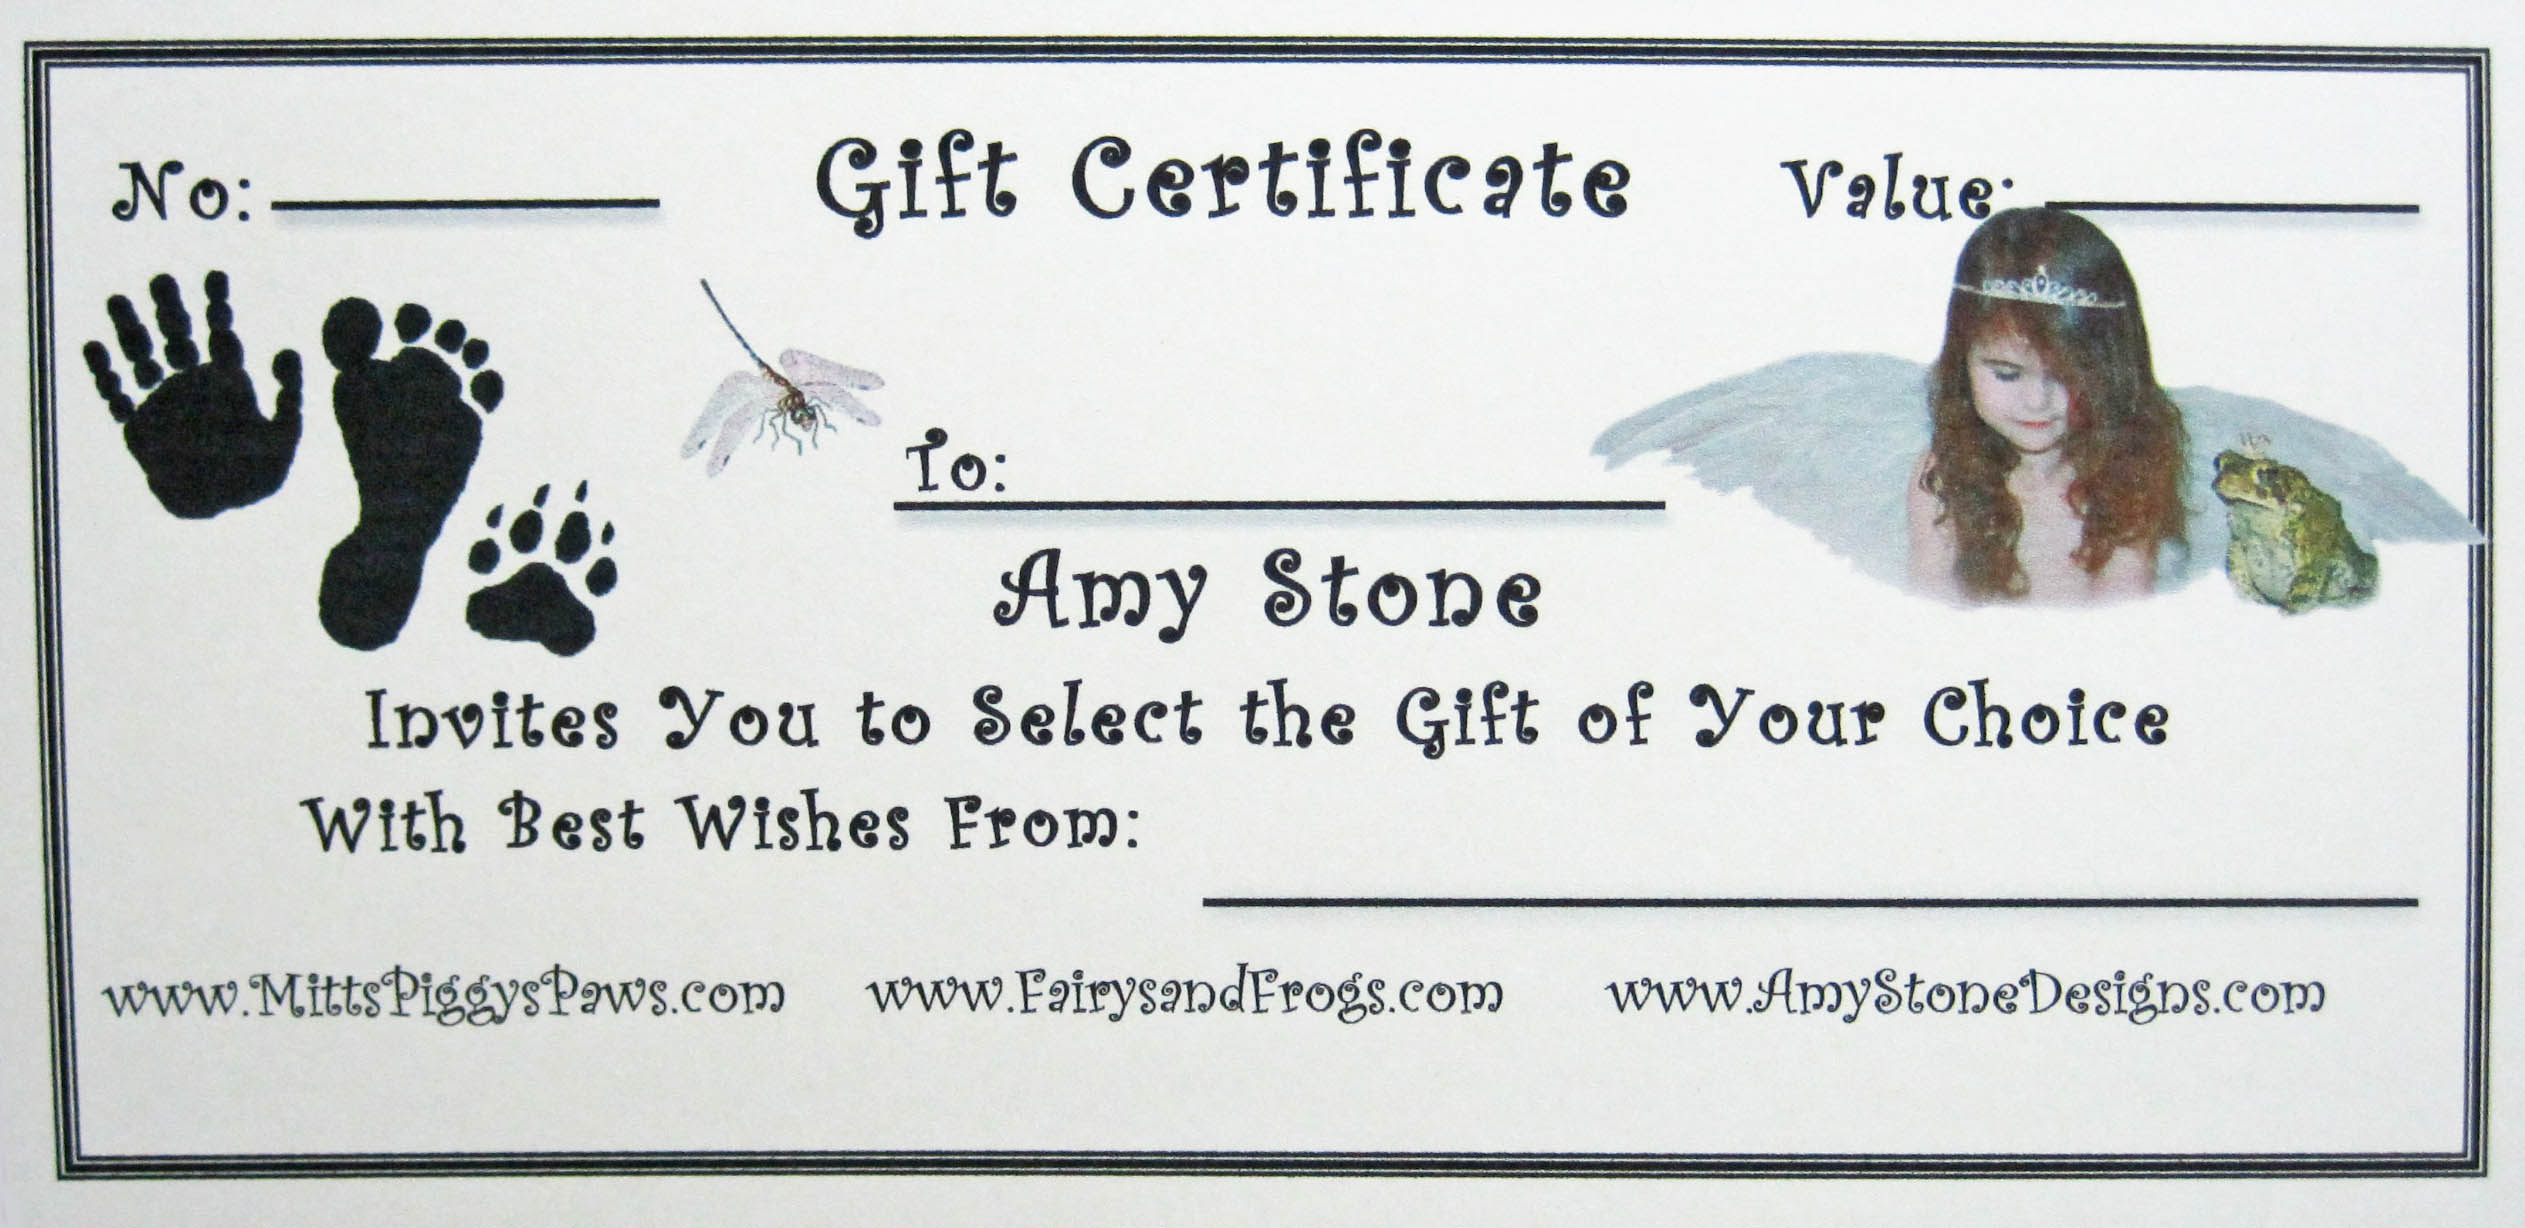 Gift Certificates Make Great Gifts | Amy Stone